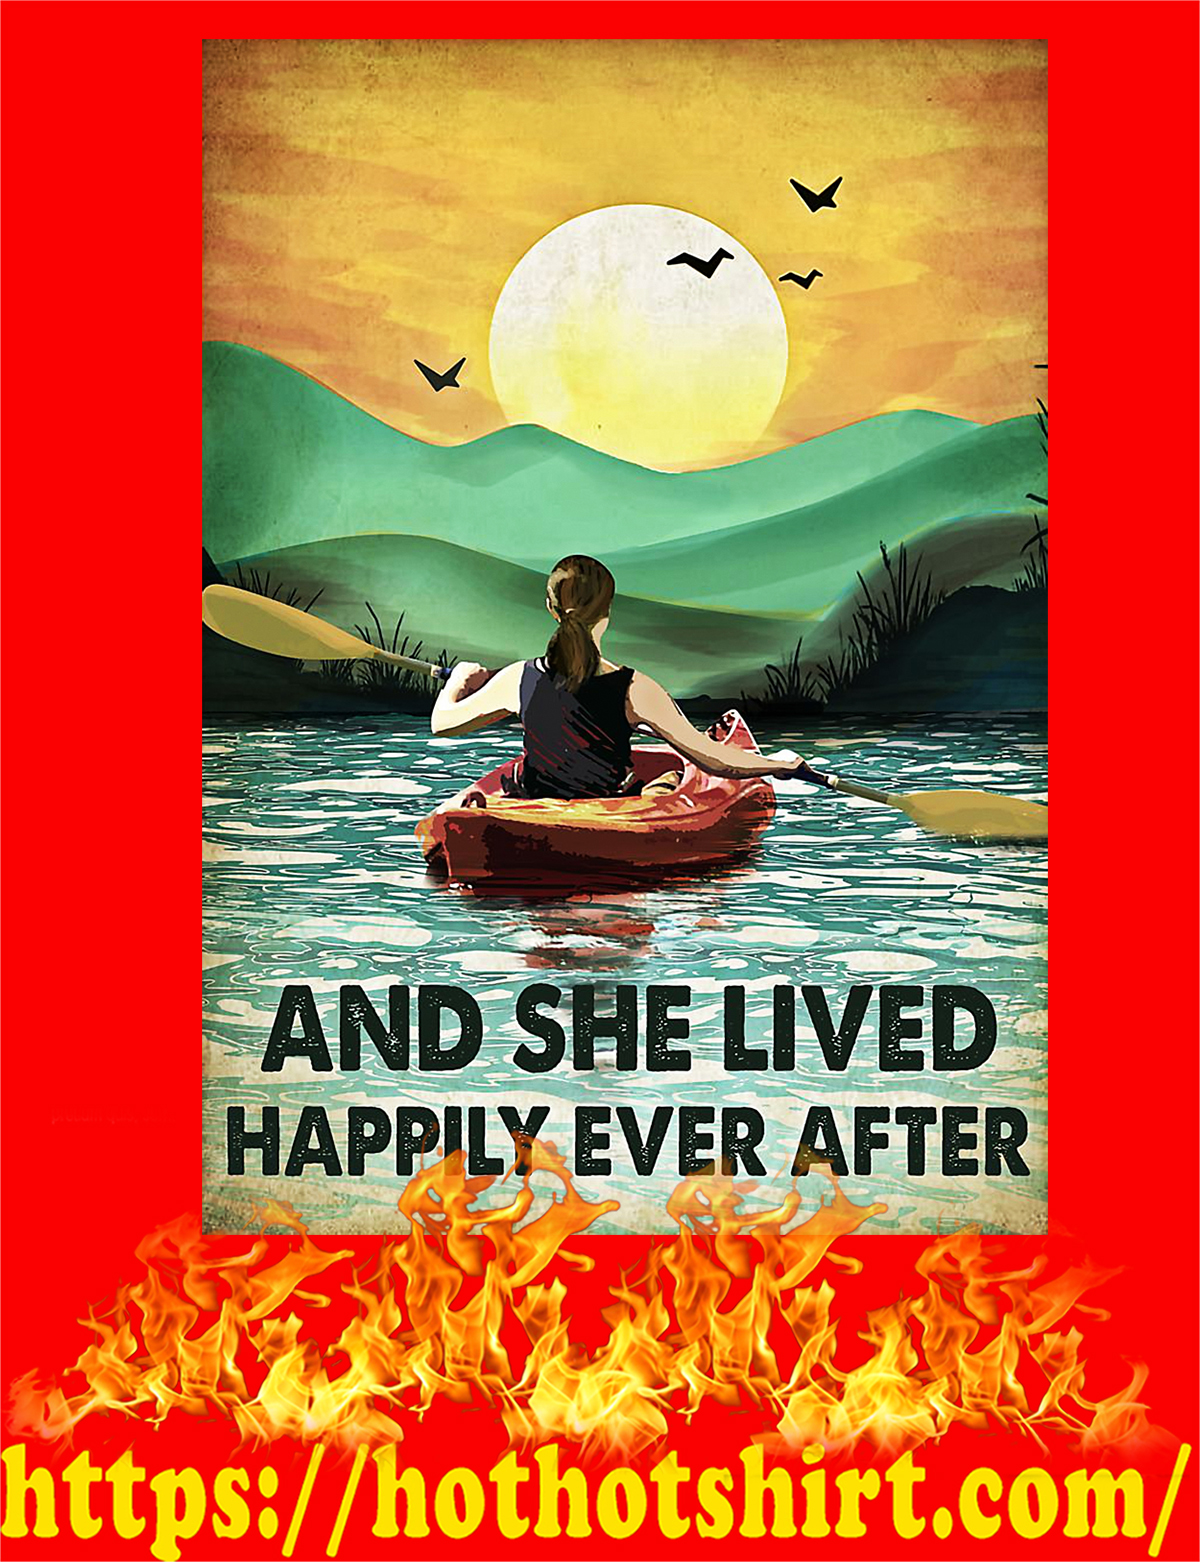 Rowing And she lived happily ever after poster - A4